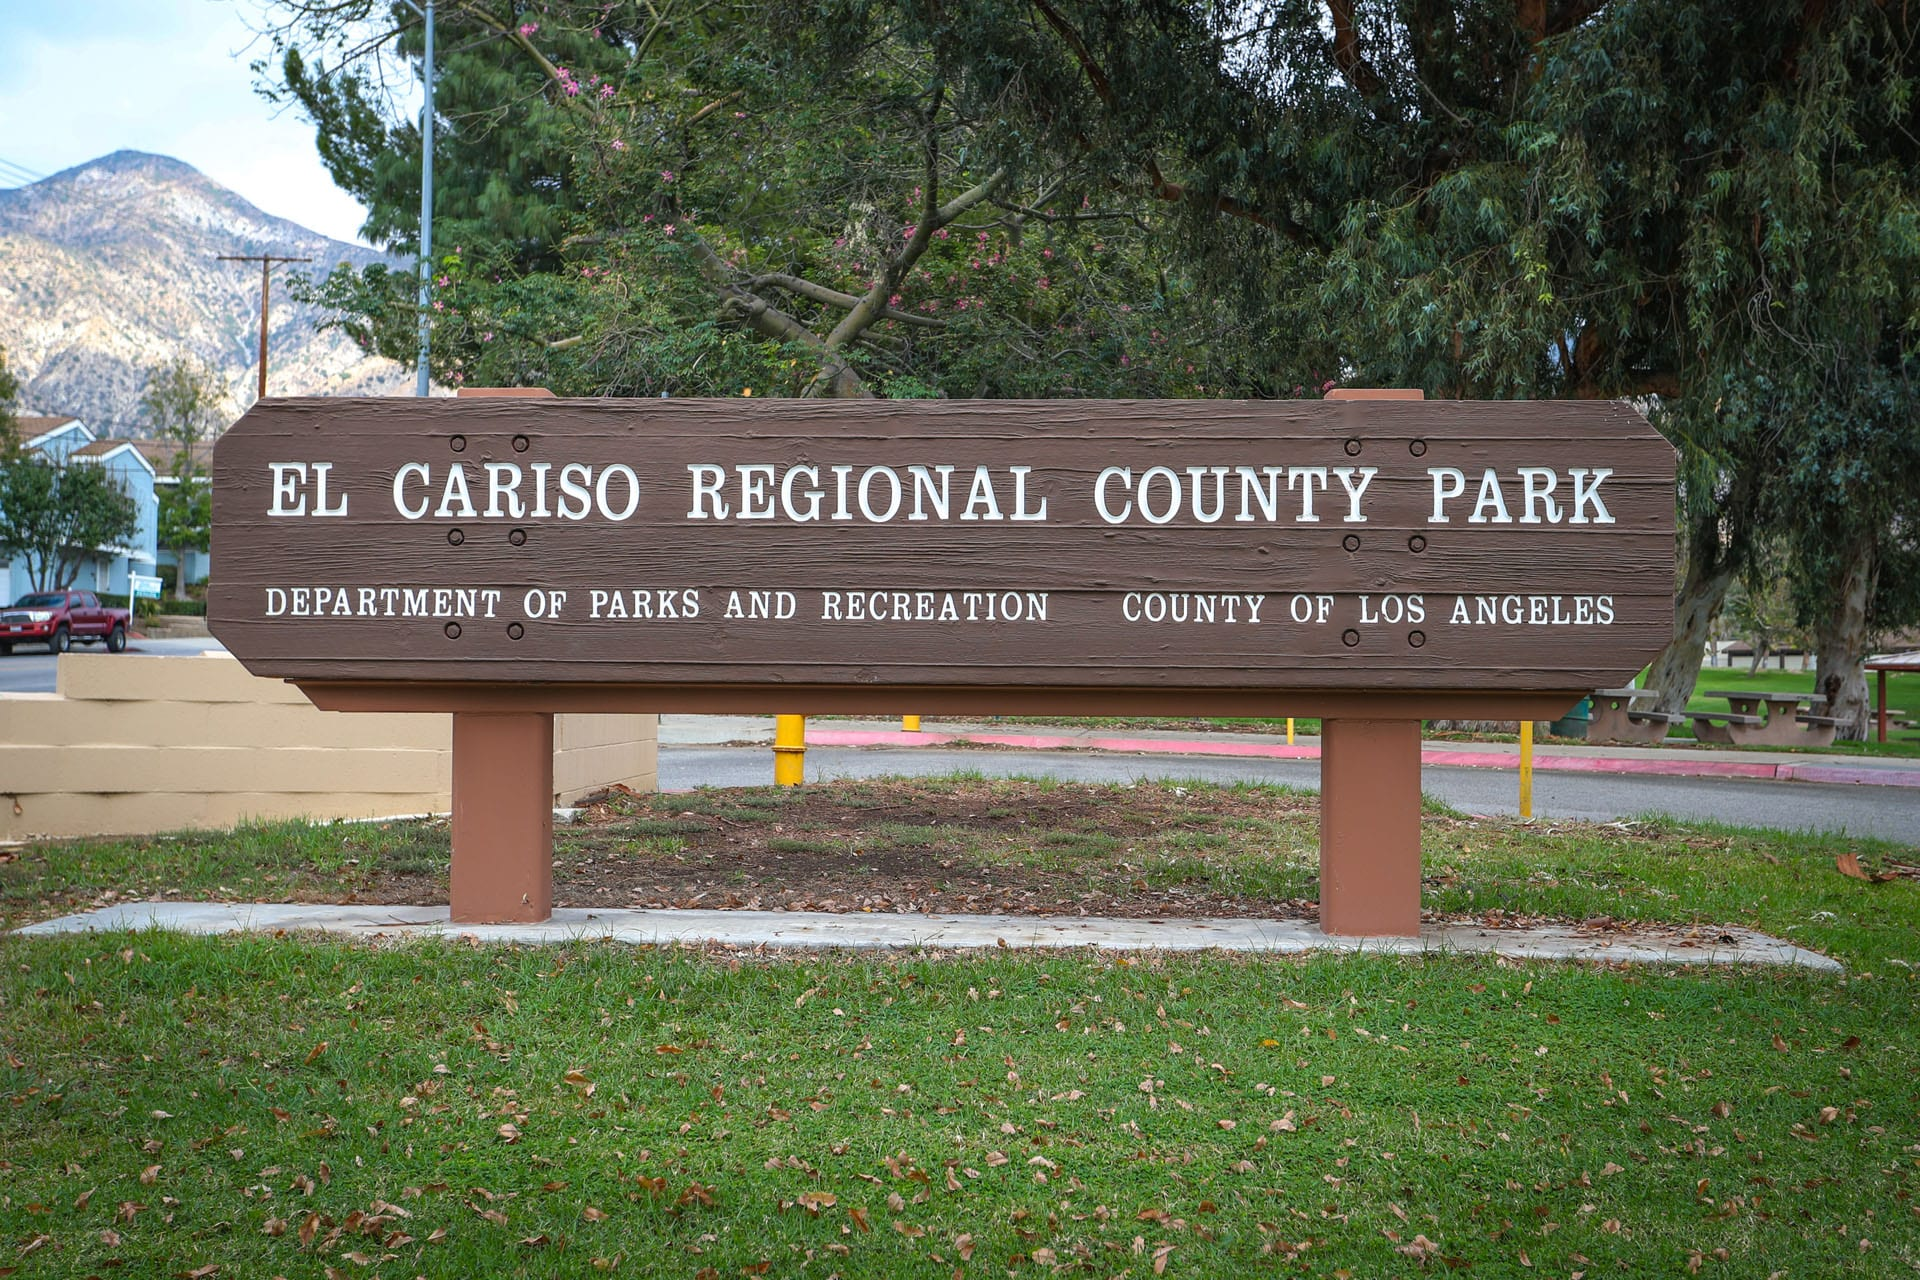 El Cariso Regional County Park sign